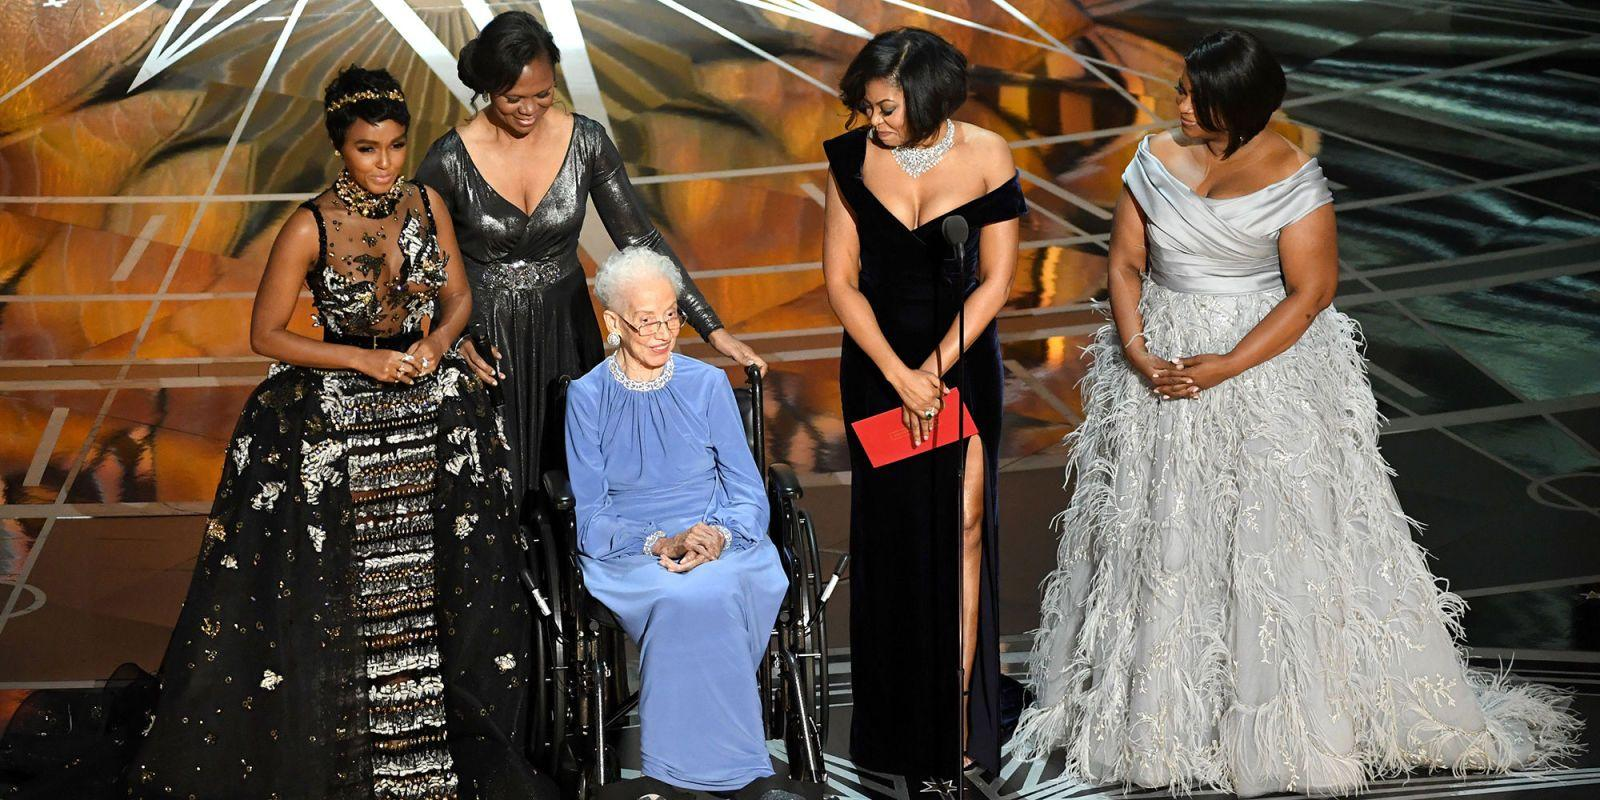 Katherine Johnson steals the show